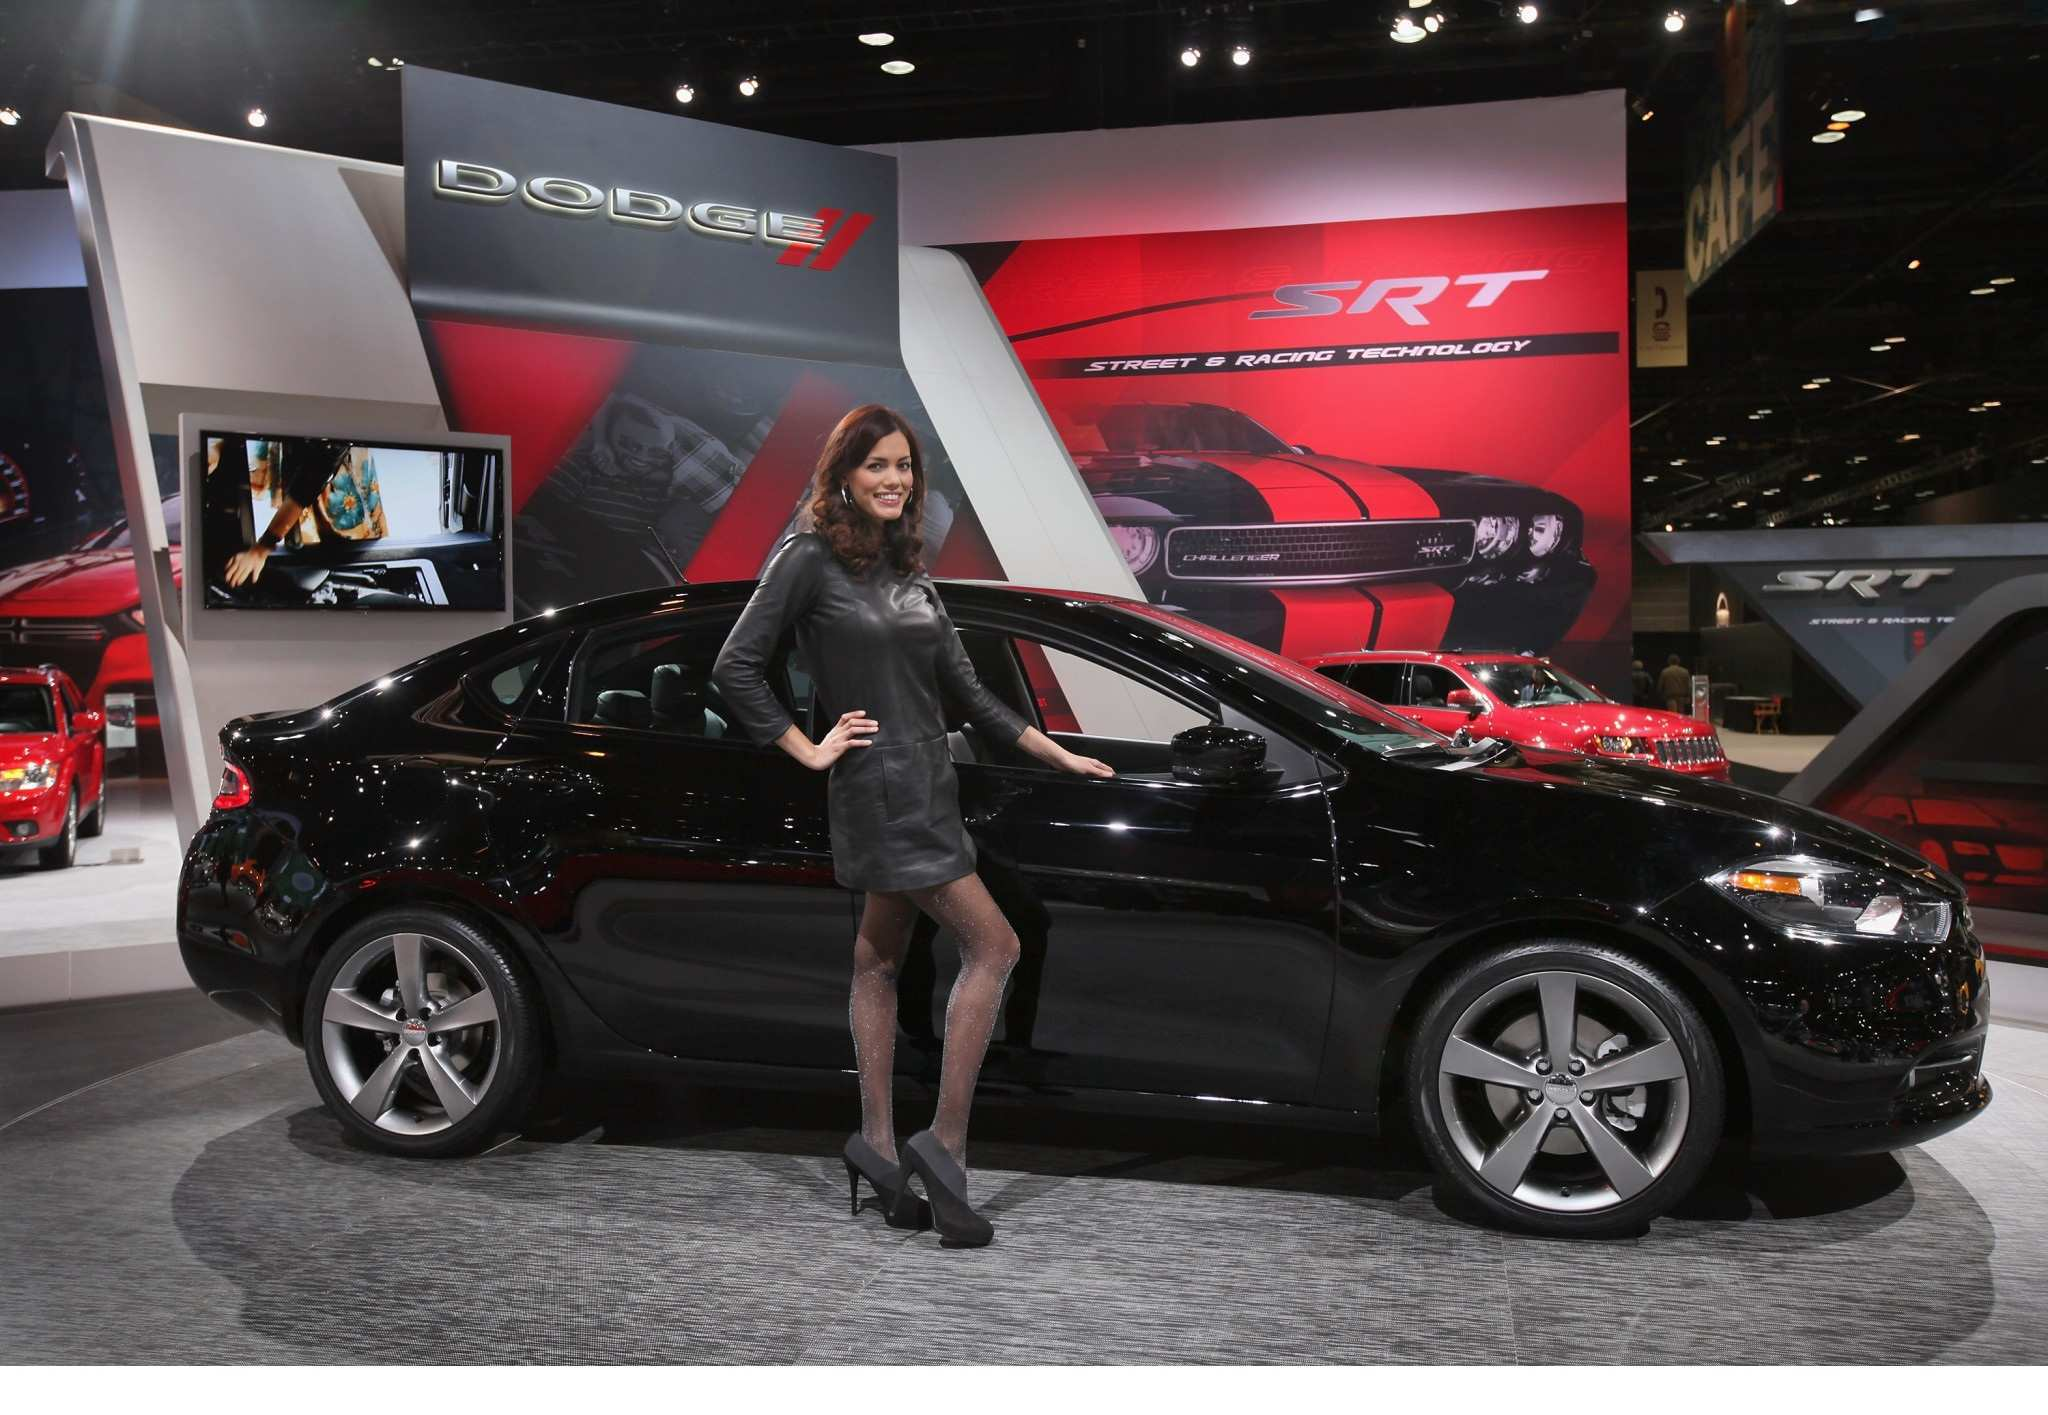 89 The Best 2020 Dodge Dart Srt4 Price Design And Review